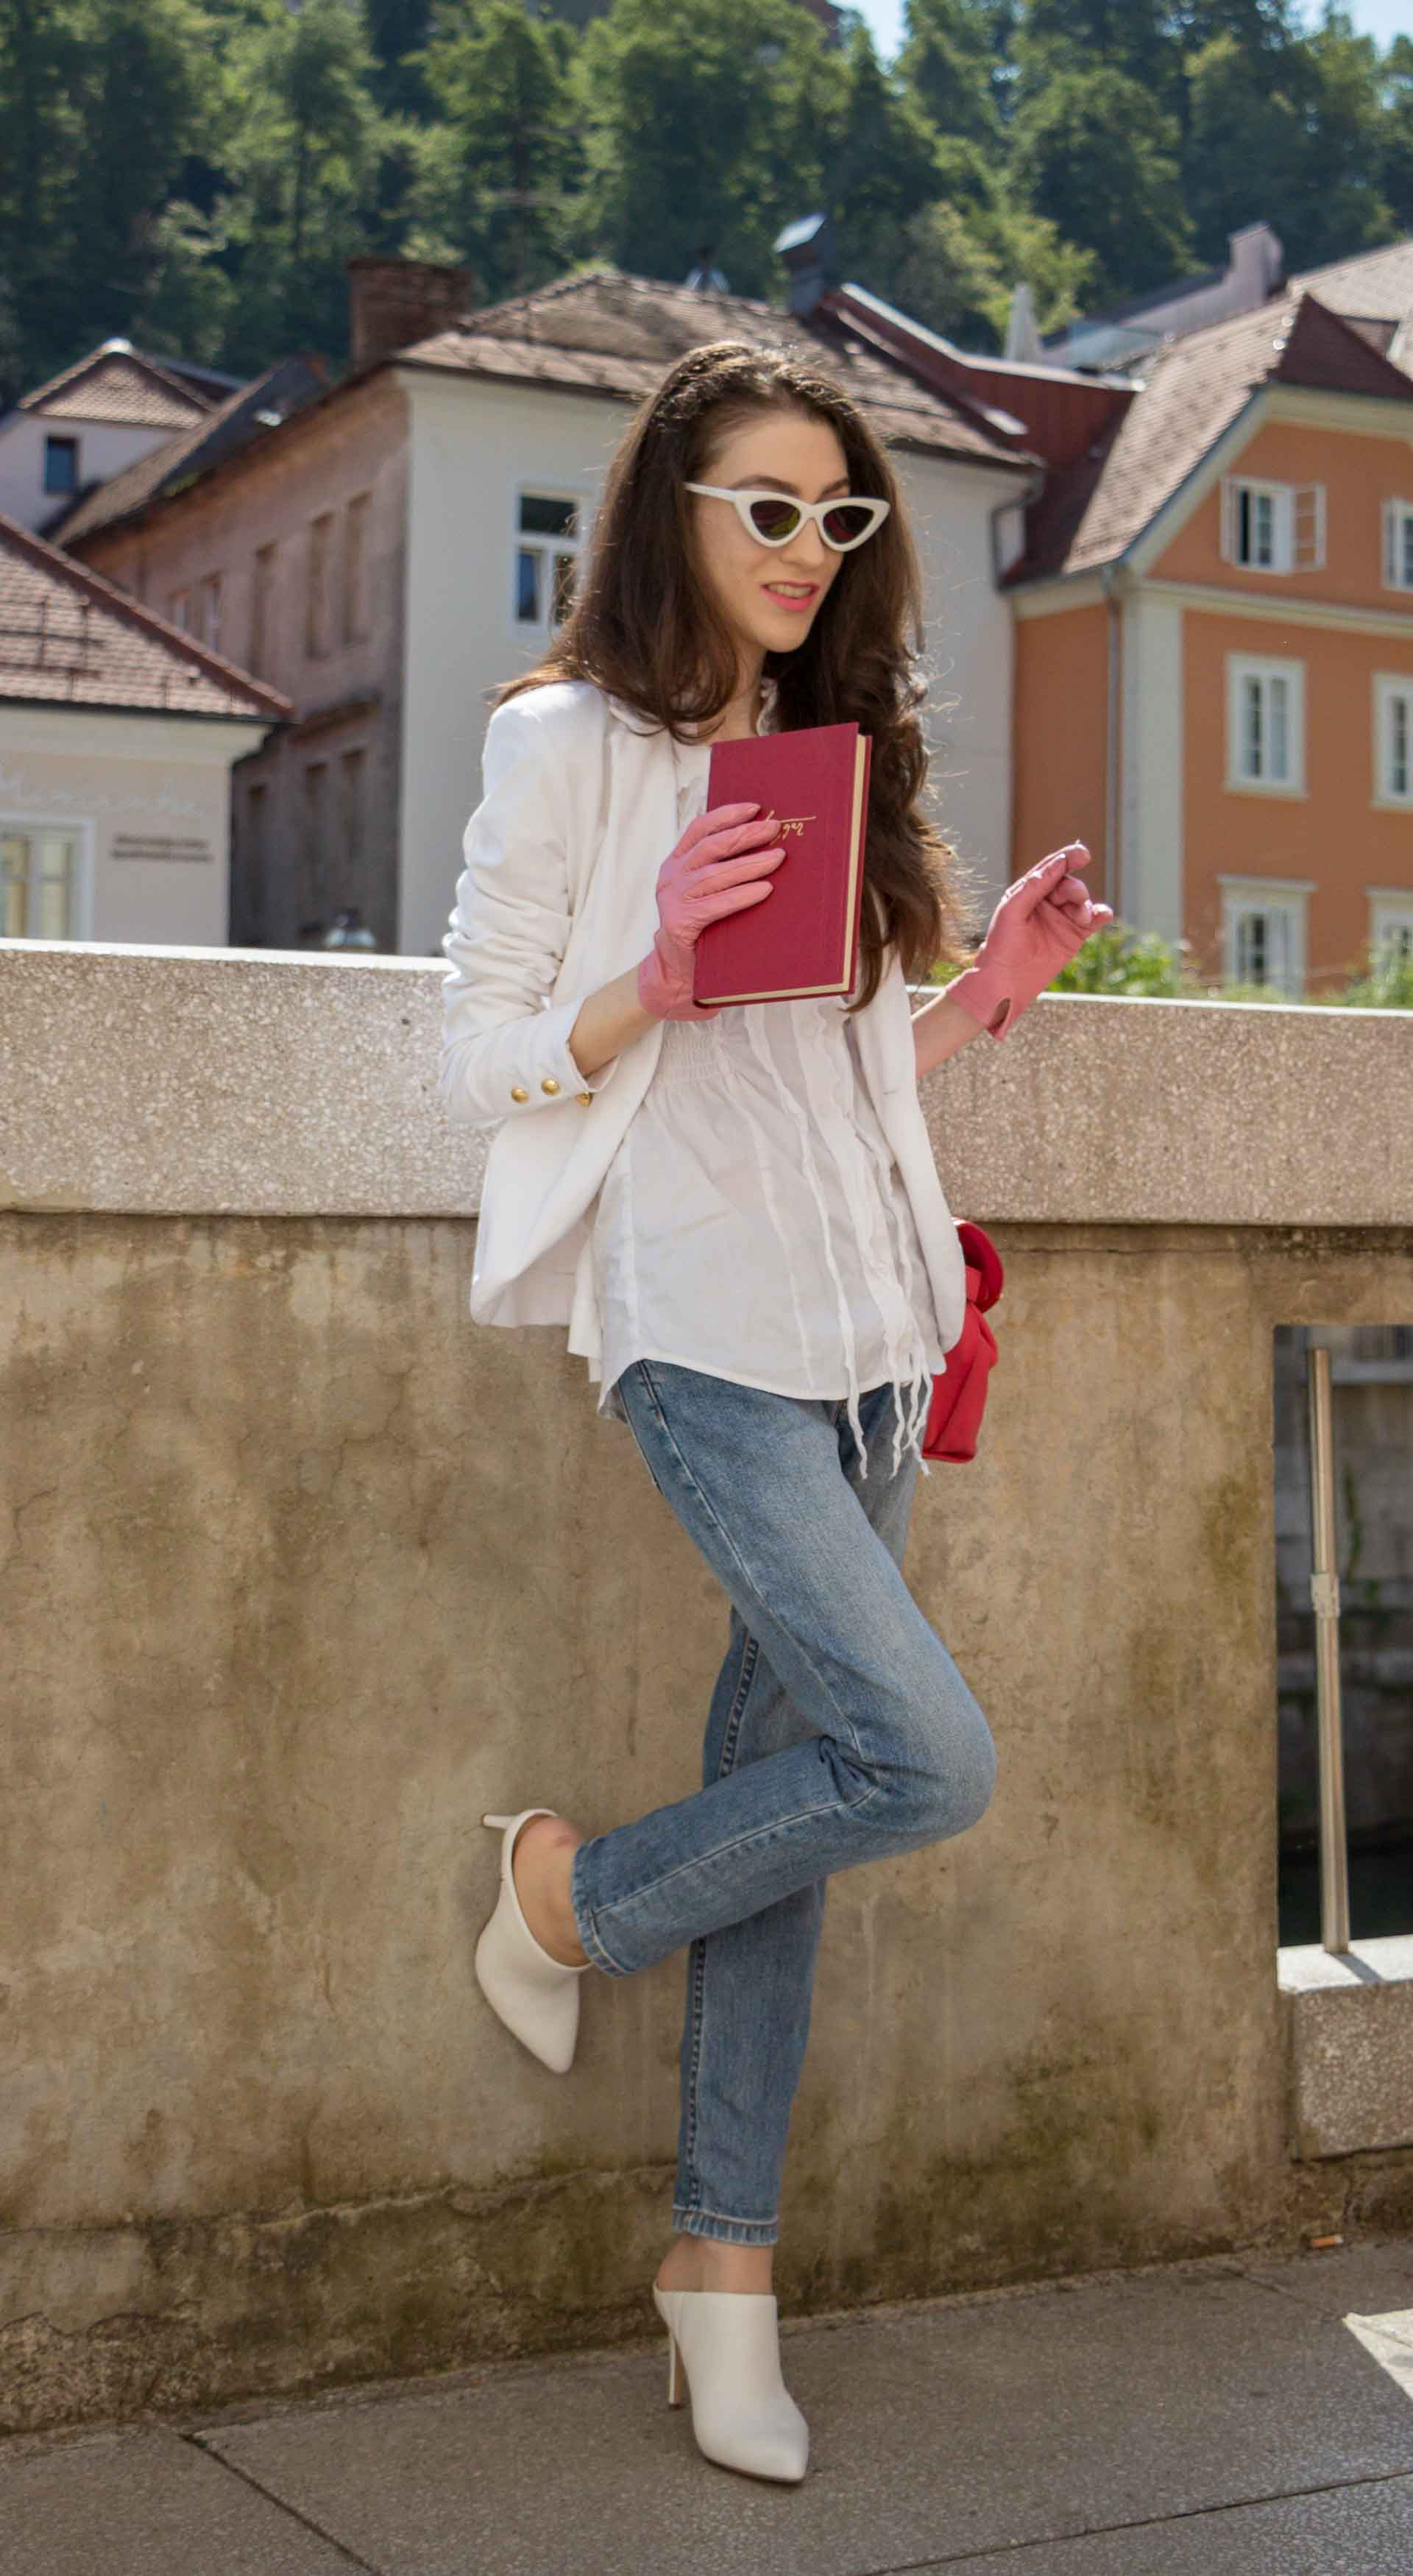 Veronika Lipar Fashion Blogger of Brunette from Wall Street dressed in white mules, blue A.P.C. mom jeans, white fringe blouse, white blazer, pink gloves, pink top handle bag and Le Specs Lolita white cat eye sunglasses while reading book by the book stand on the street